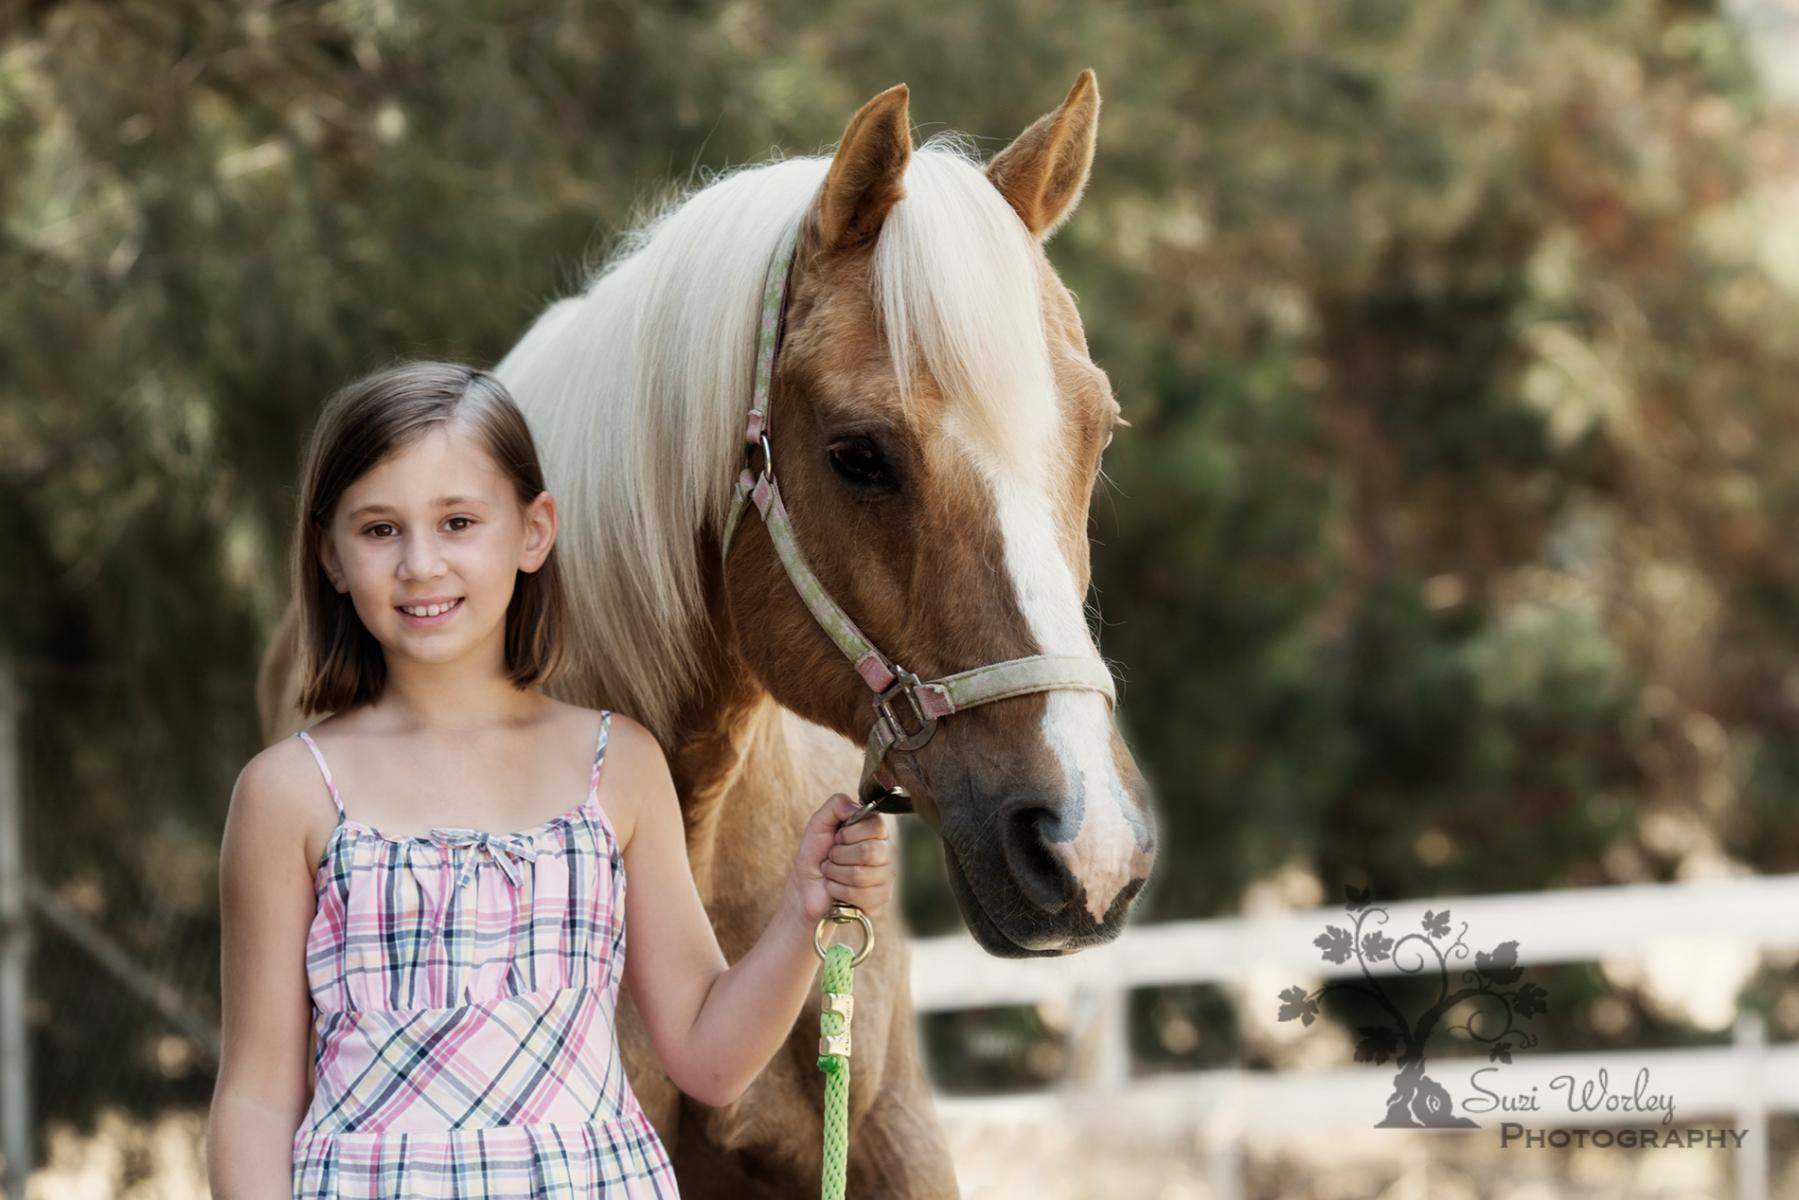 There's something about girls and horses. #Palomino #SuziWorleyPhotography #horses